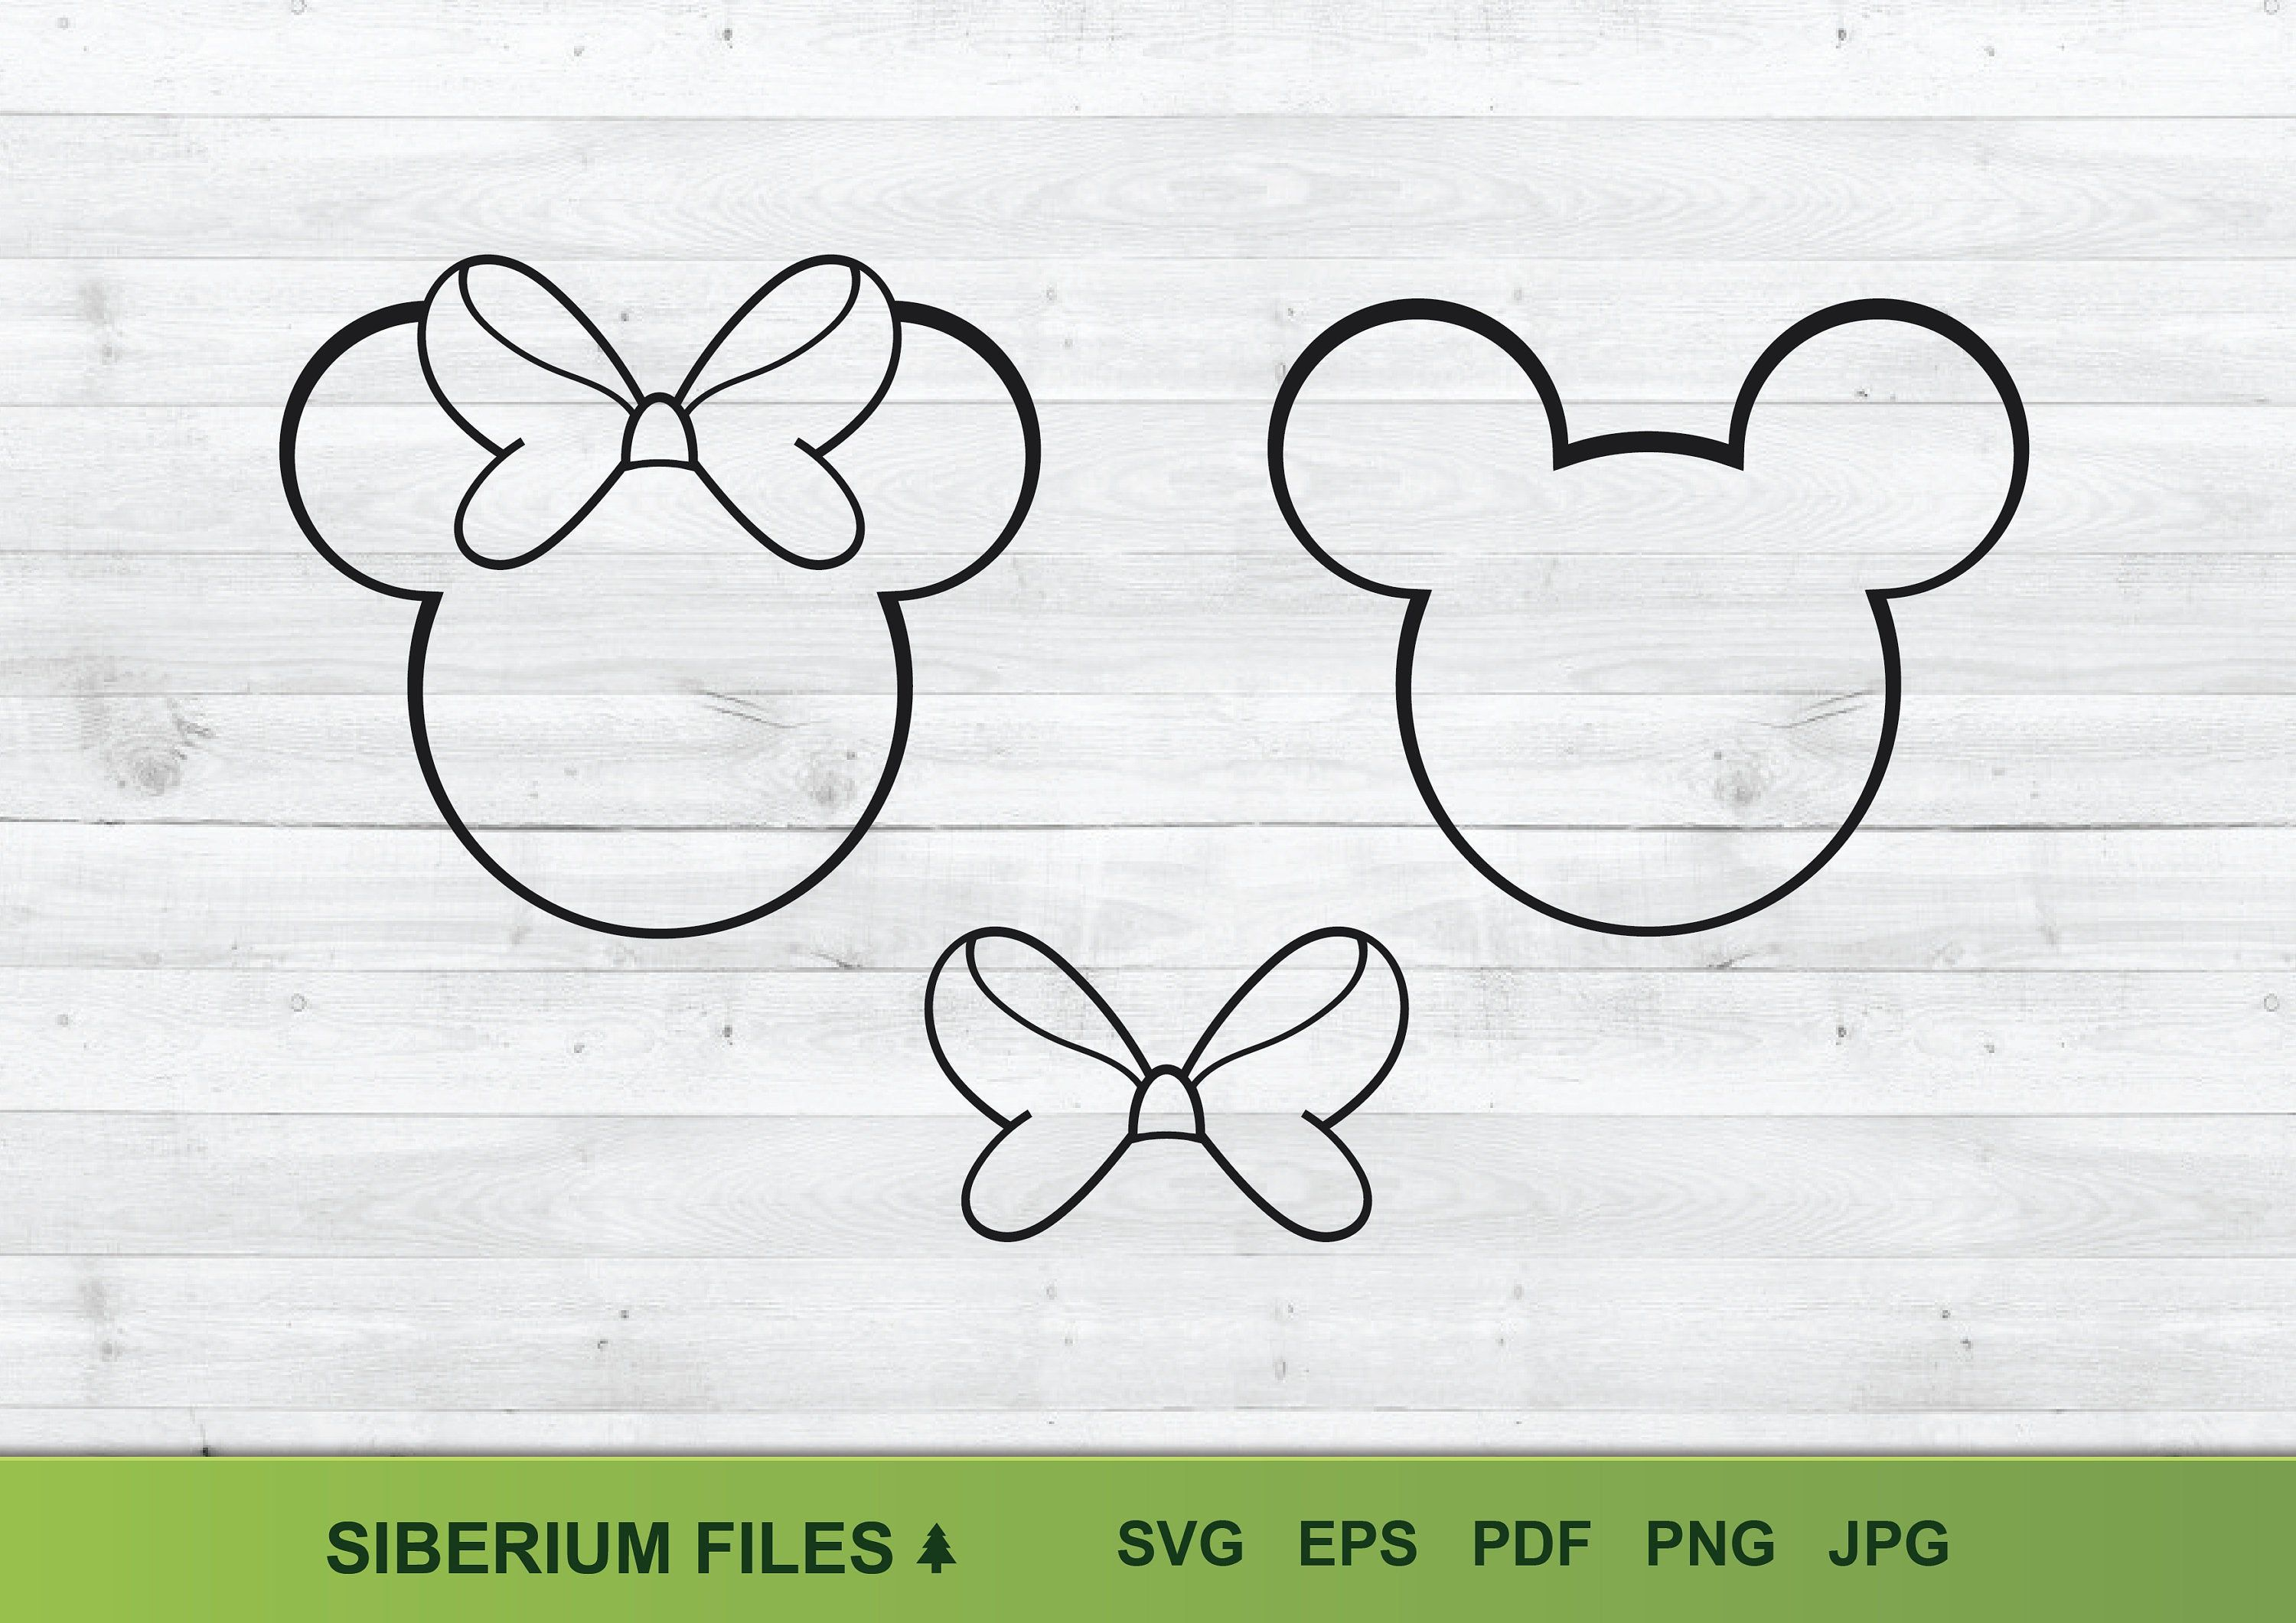 Mickey Mouse svg. Mickey Outline Head Svg, Mickey Mouse